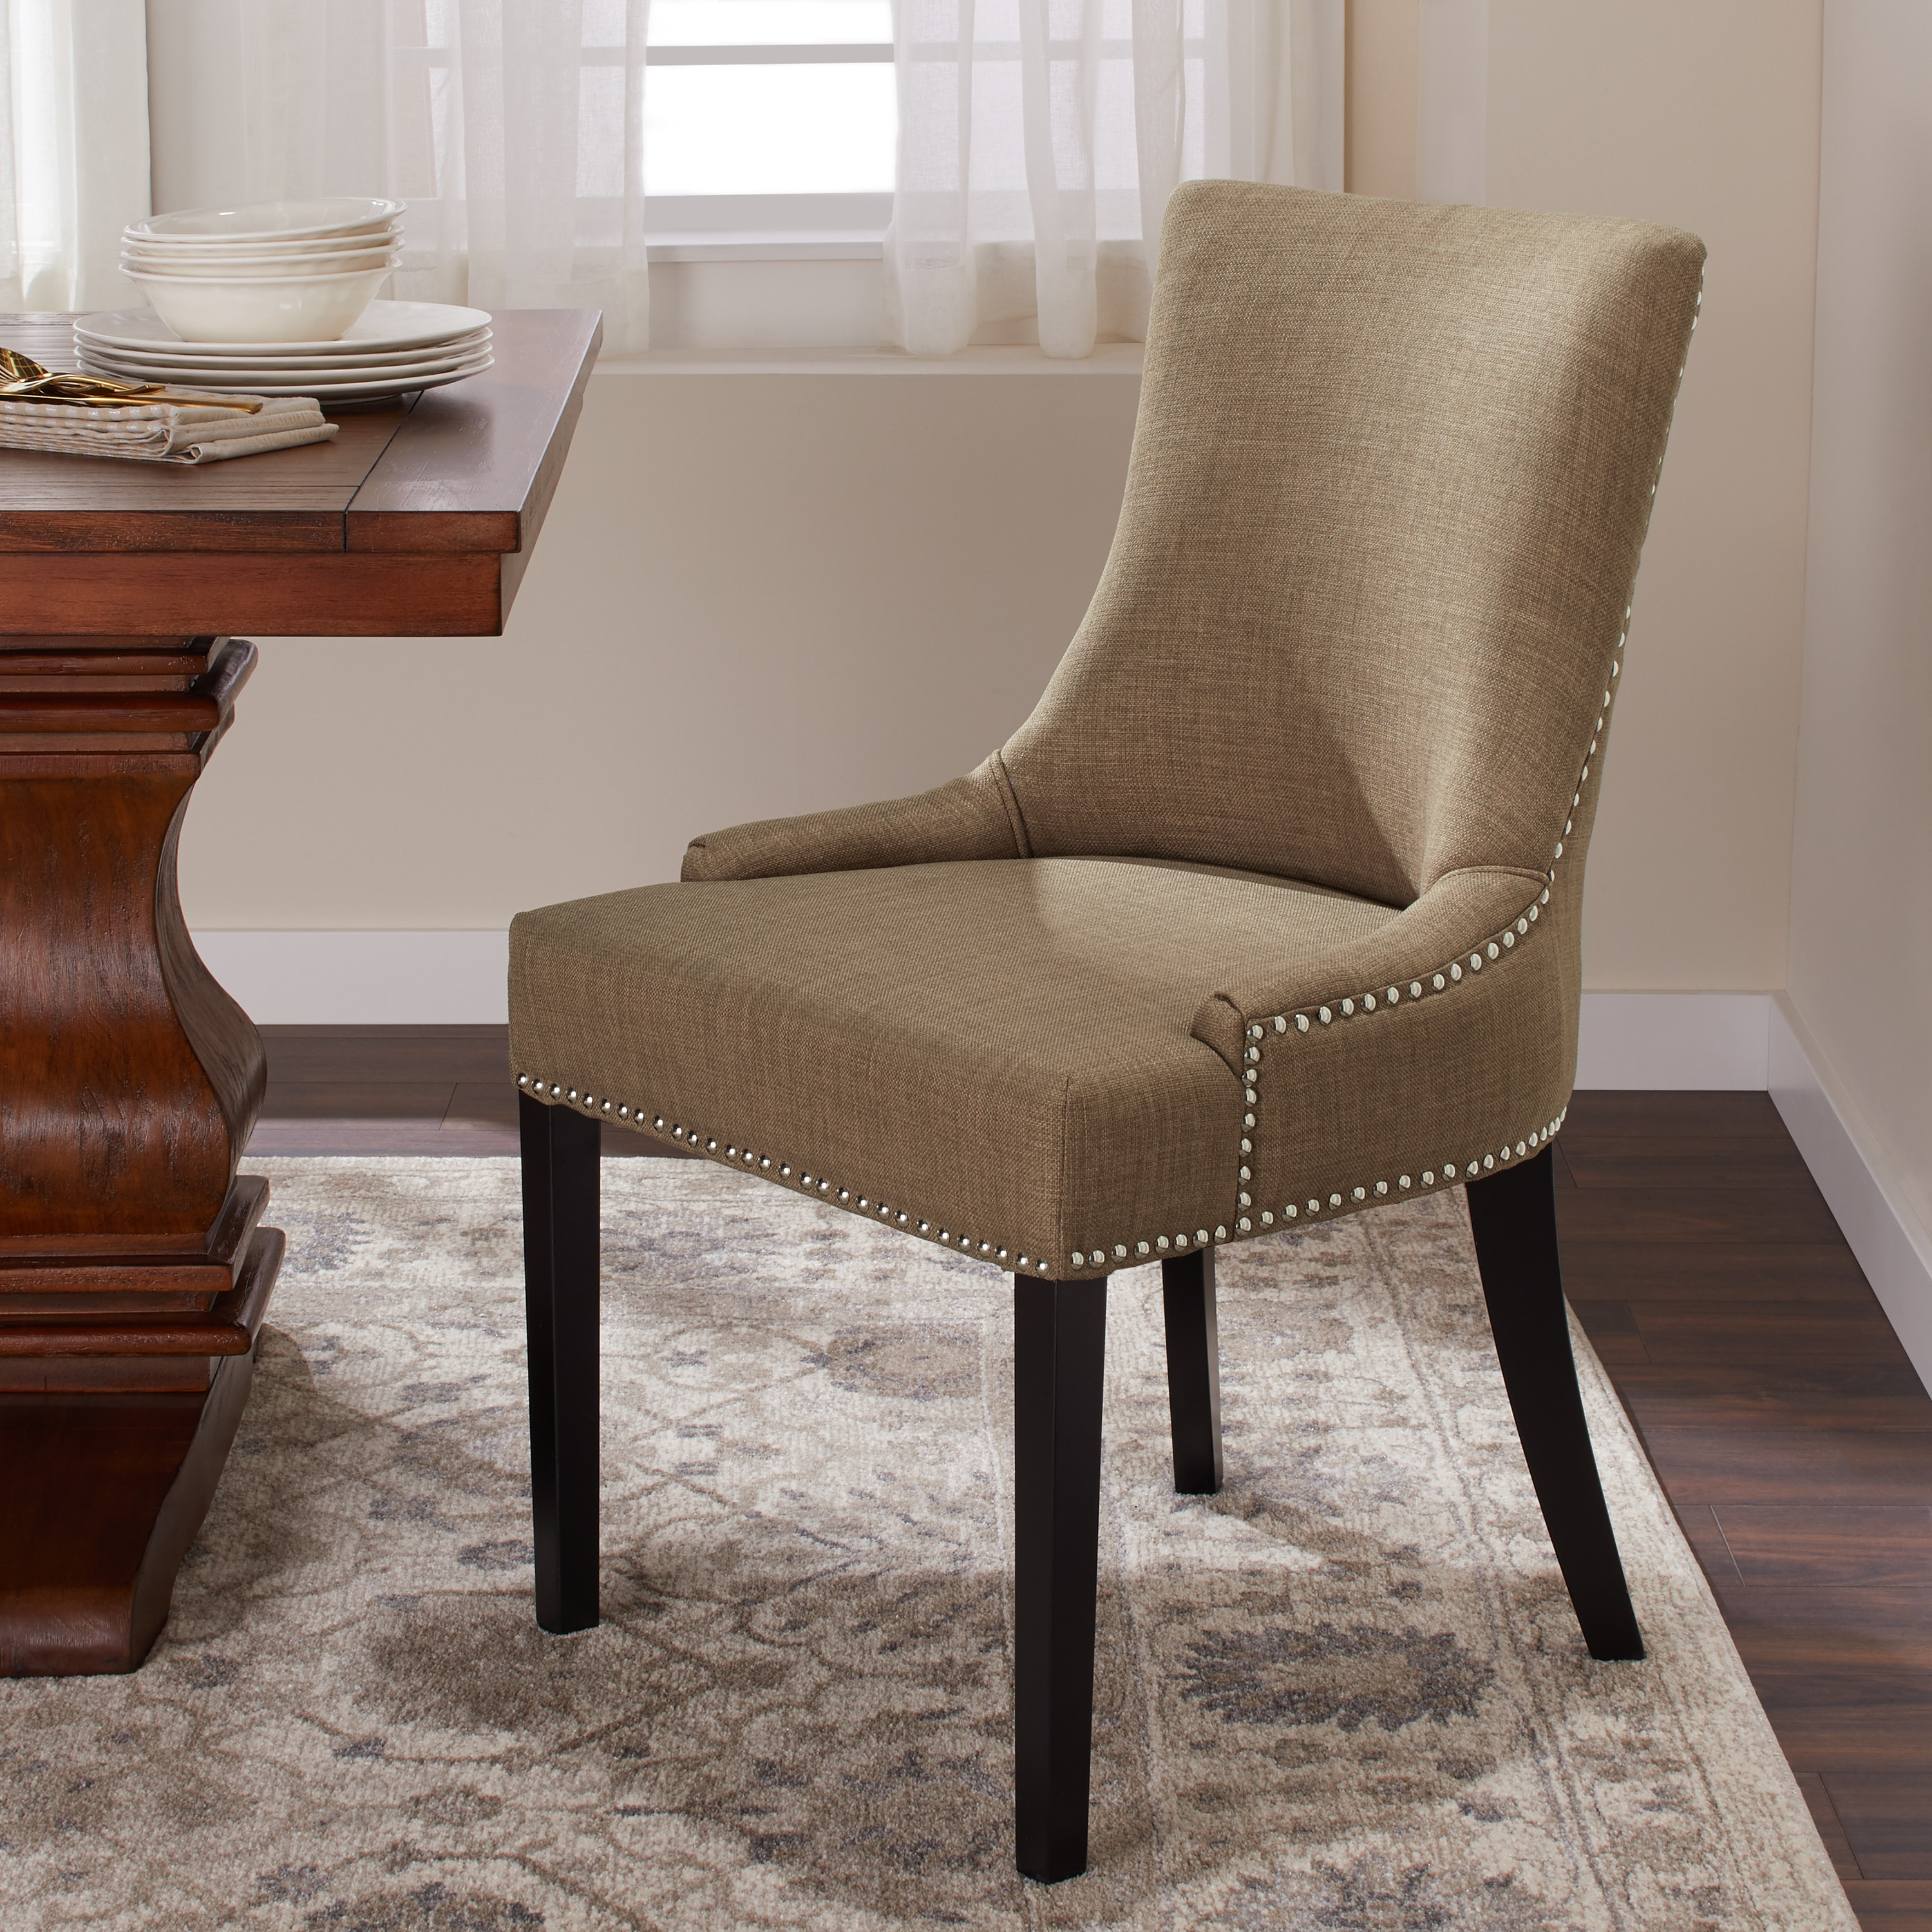 Wondrous Nailhead Trim Chair The Arts Onthecornerstone Fun Painted Chair Ideas Images Onthecornerstoneorg